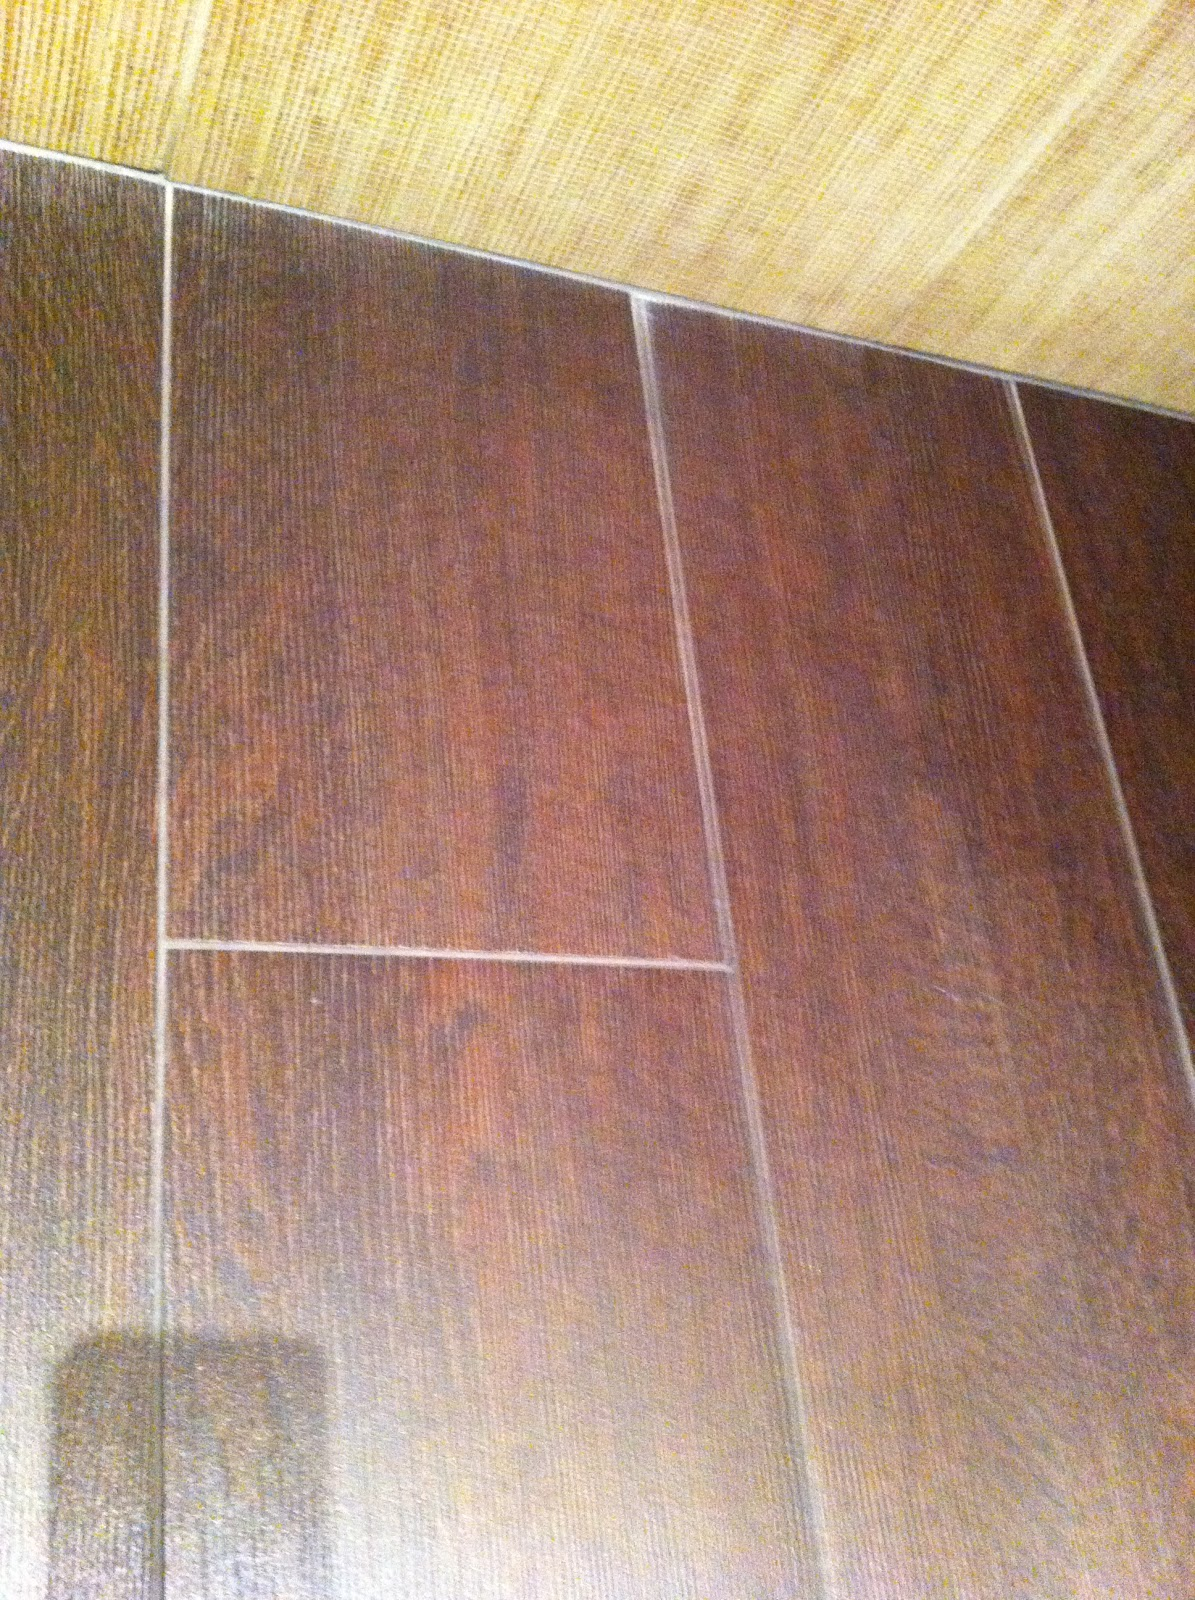 28 amazing pictures and ideas of wood plank tile in bathroom 13 dailygadgetfo Image collections